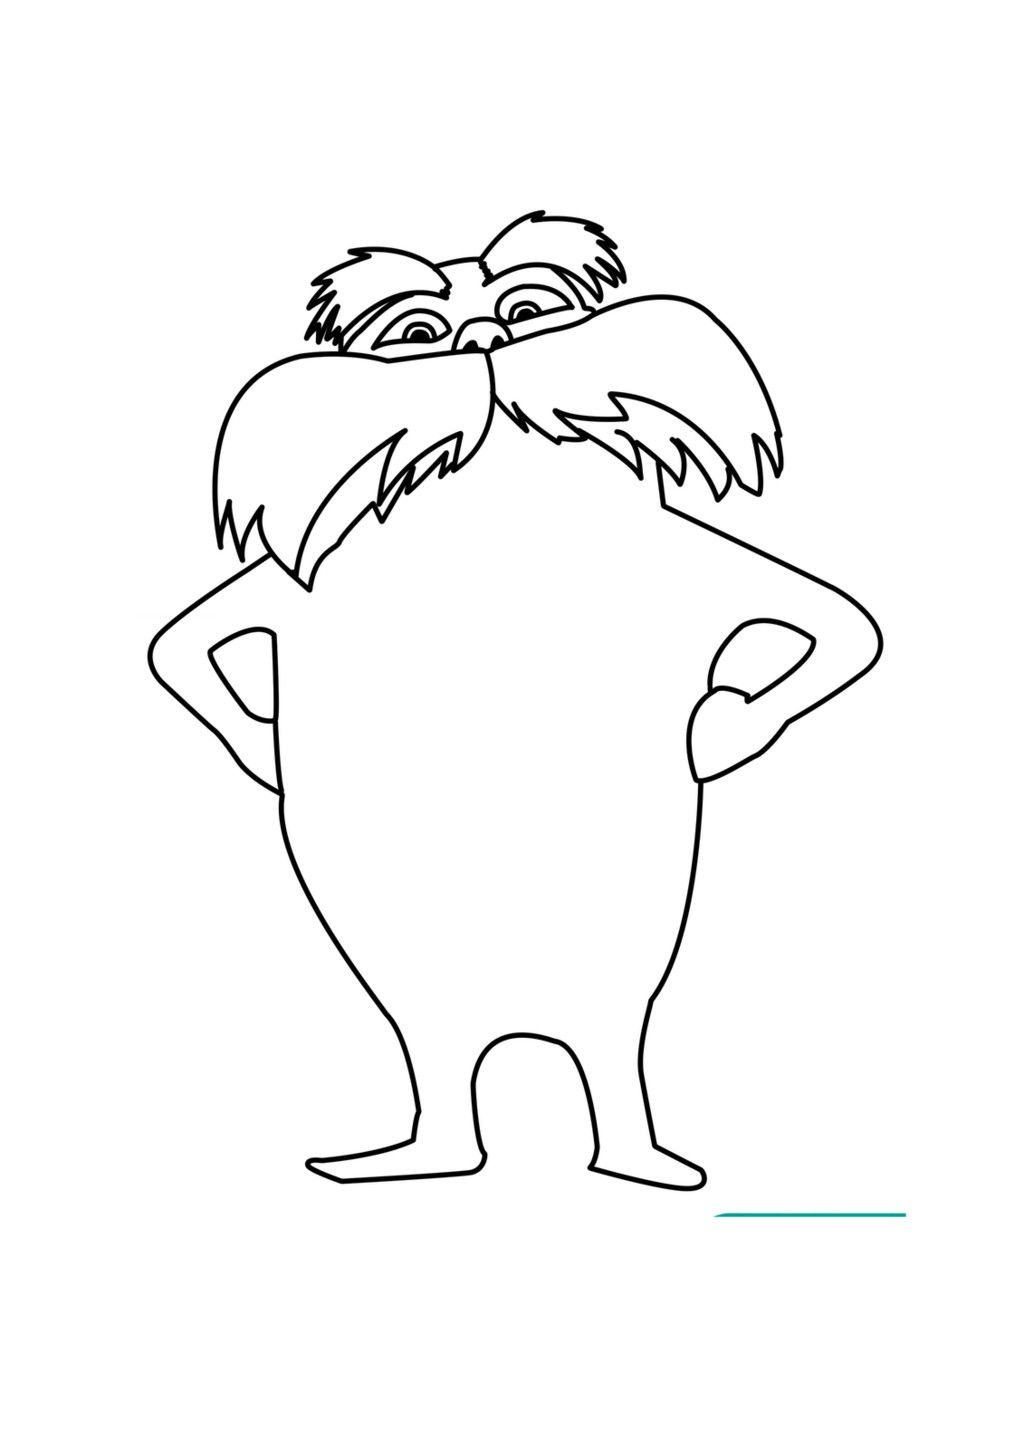 how to draw the lorax the best free lorax drawing images download from 90 free lorax to the how draw